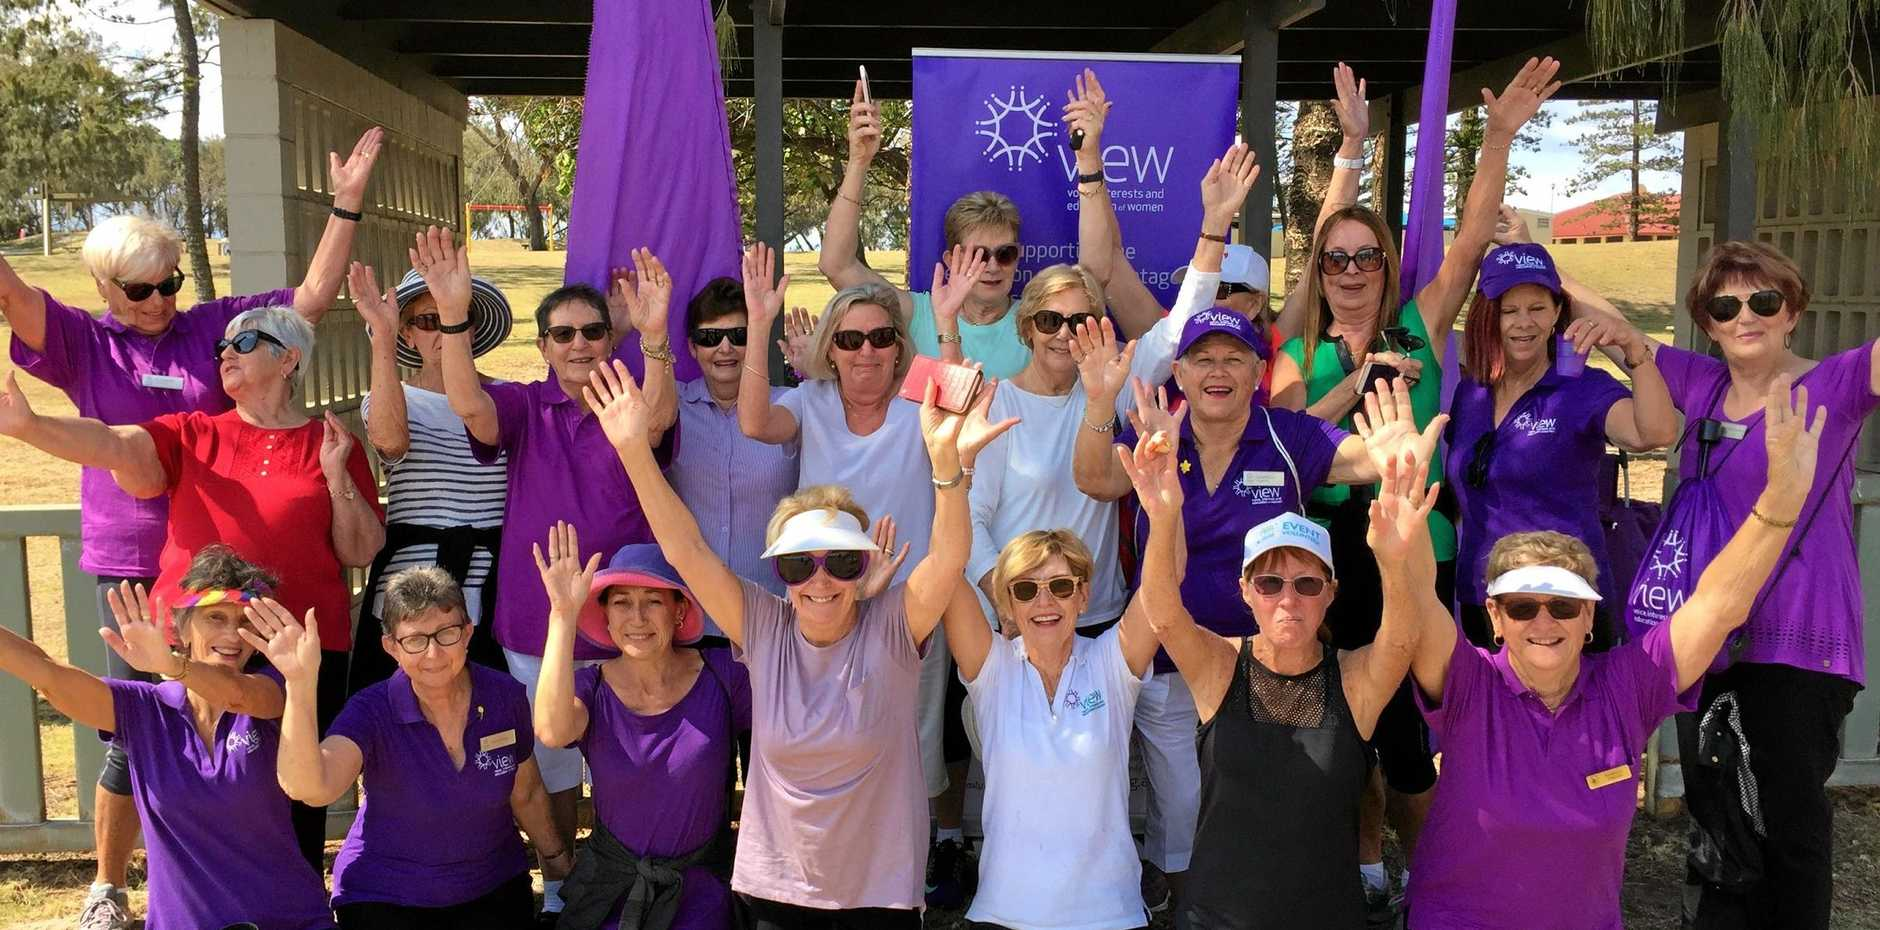 HANDS UP FOR FUN: Southport Day VIEW Club had a great morning   when 40 VIEW ladies walked 4km at Main Beach. It was a lovely morning with plenty of smiles.